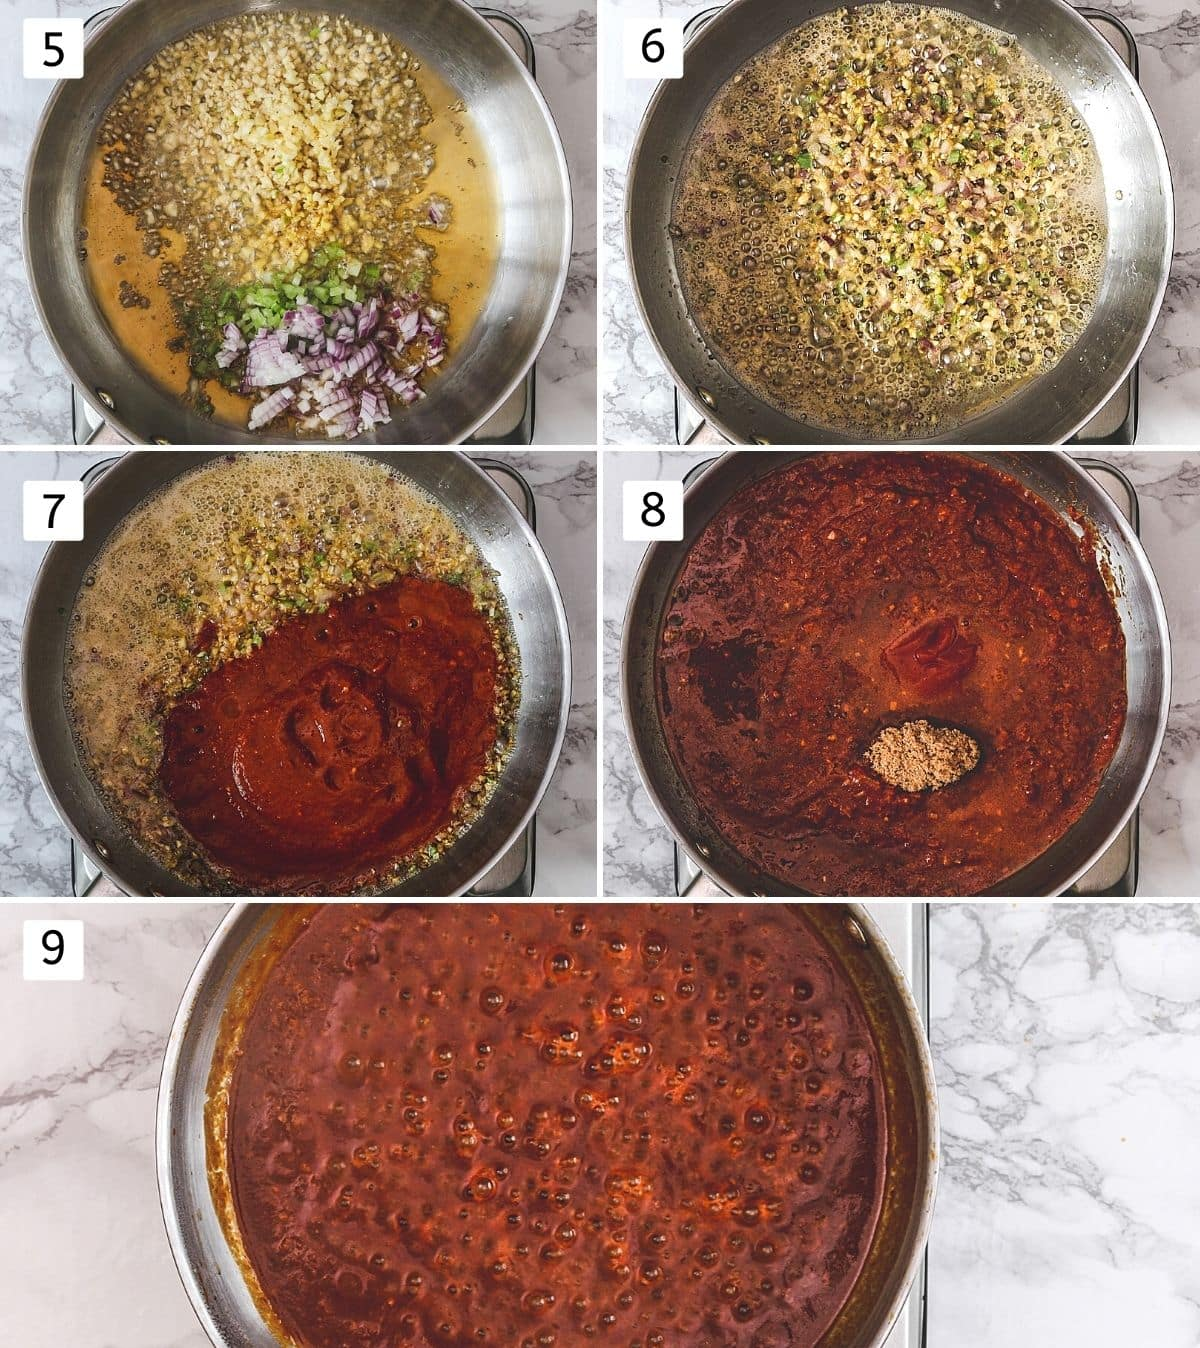 Collage of 5 steps showing adding ginger, garlic, onion, celery, sautéing, adding rest of the ingredients, mixed and simmering.